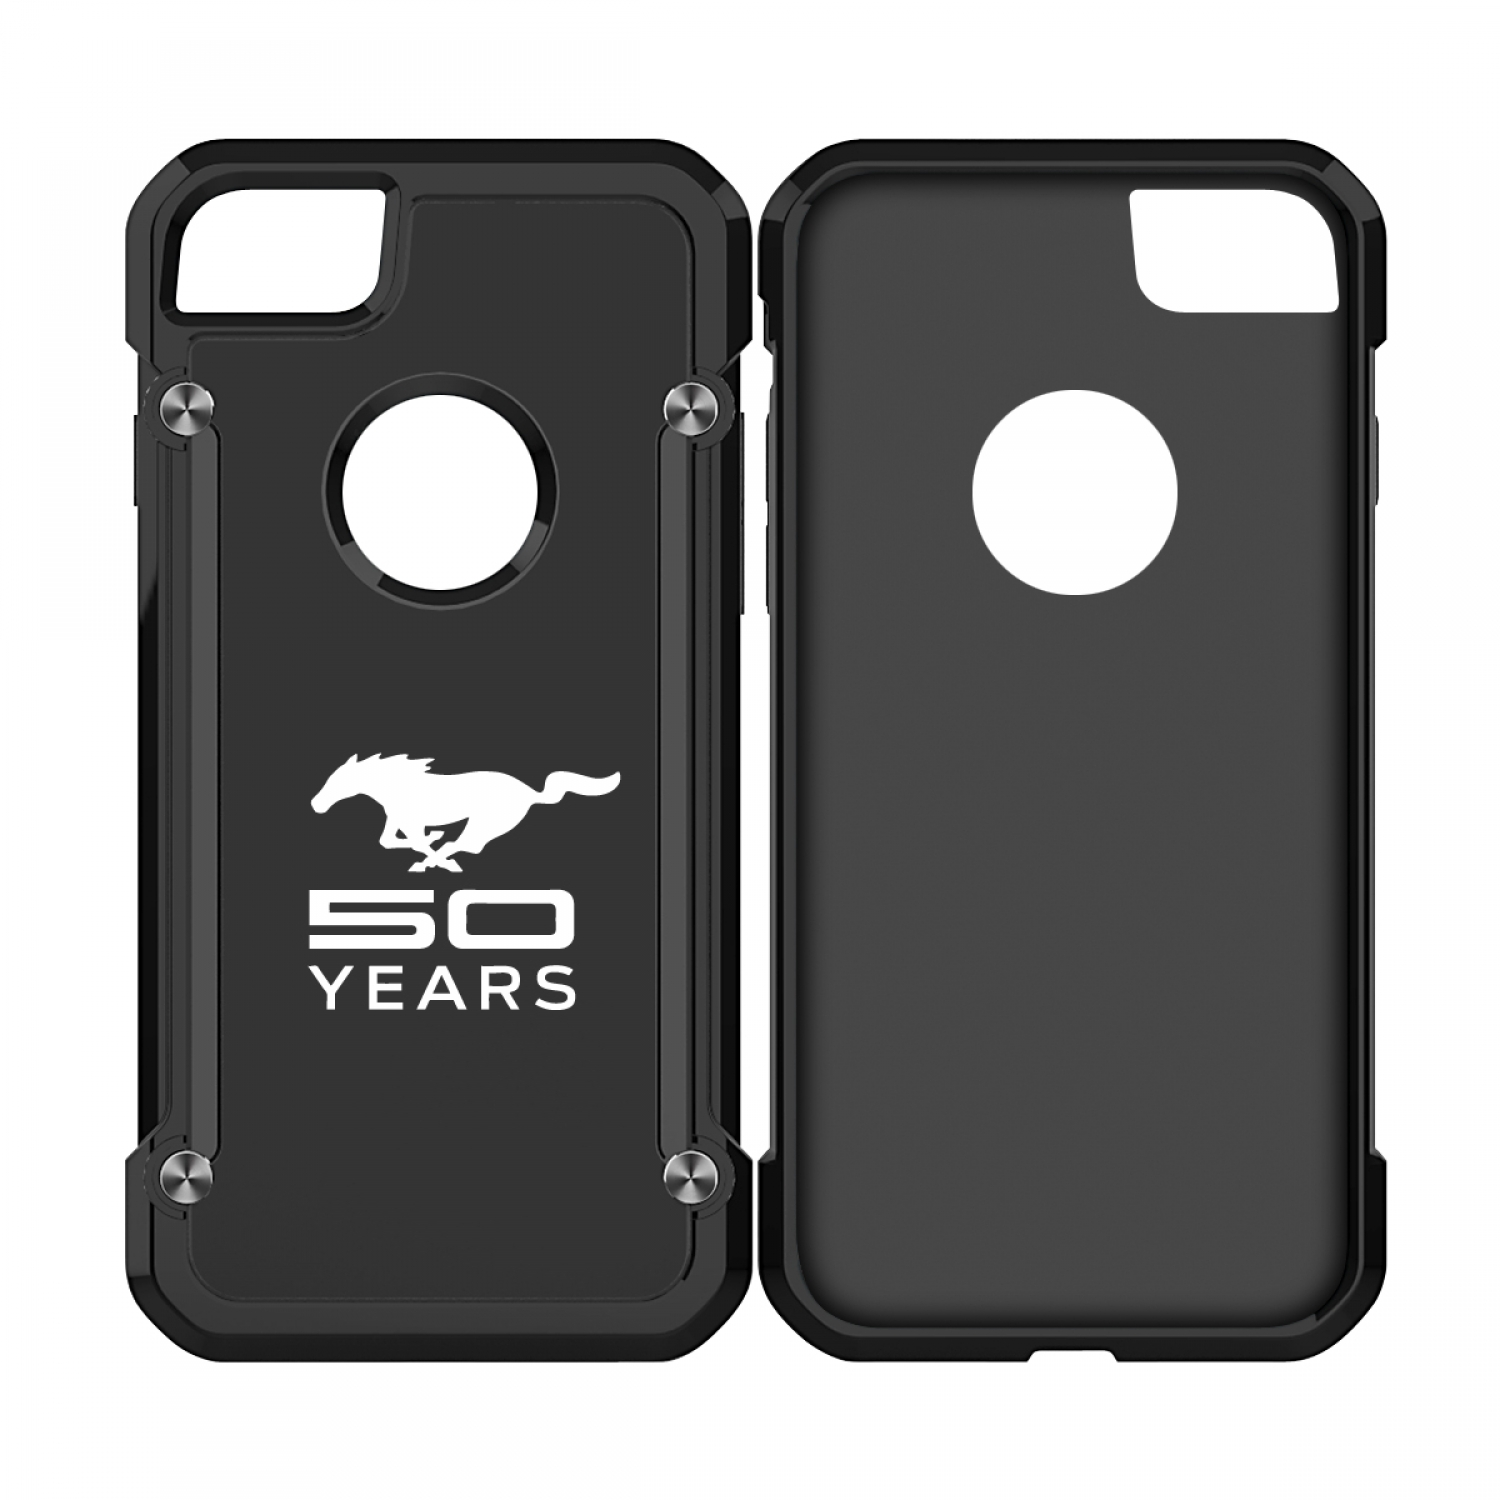 Ford Mustang 50 Years iPhone 7 iPhone 8 TPU Shockproof Black Cell Phone Case